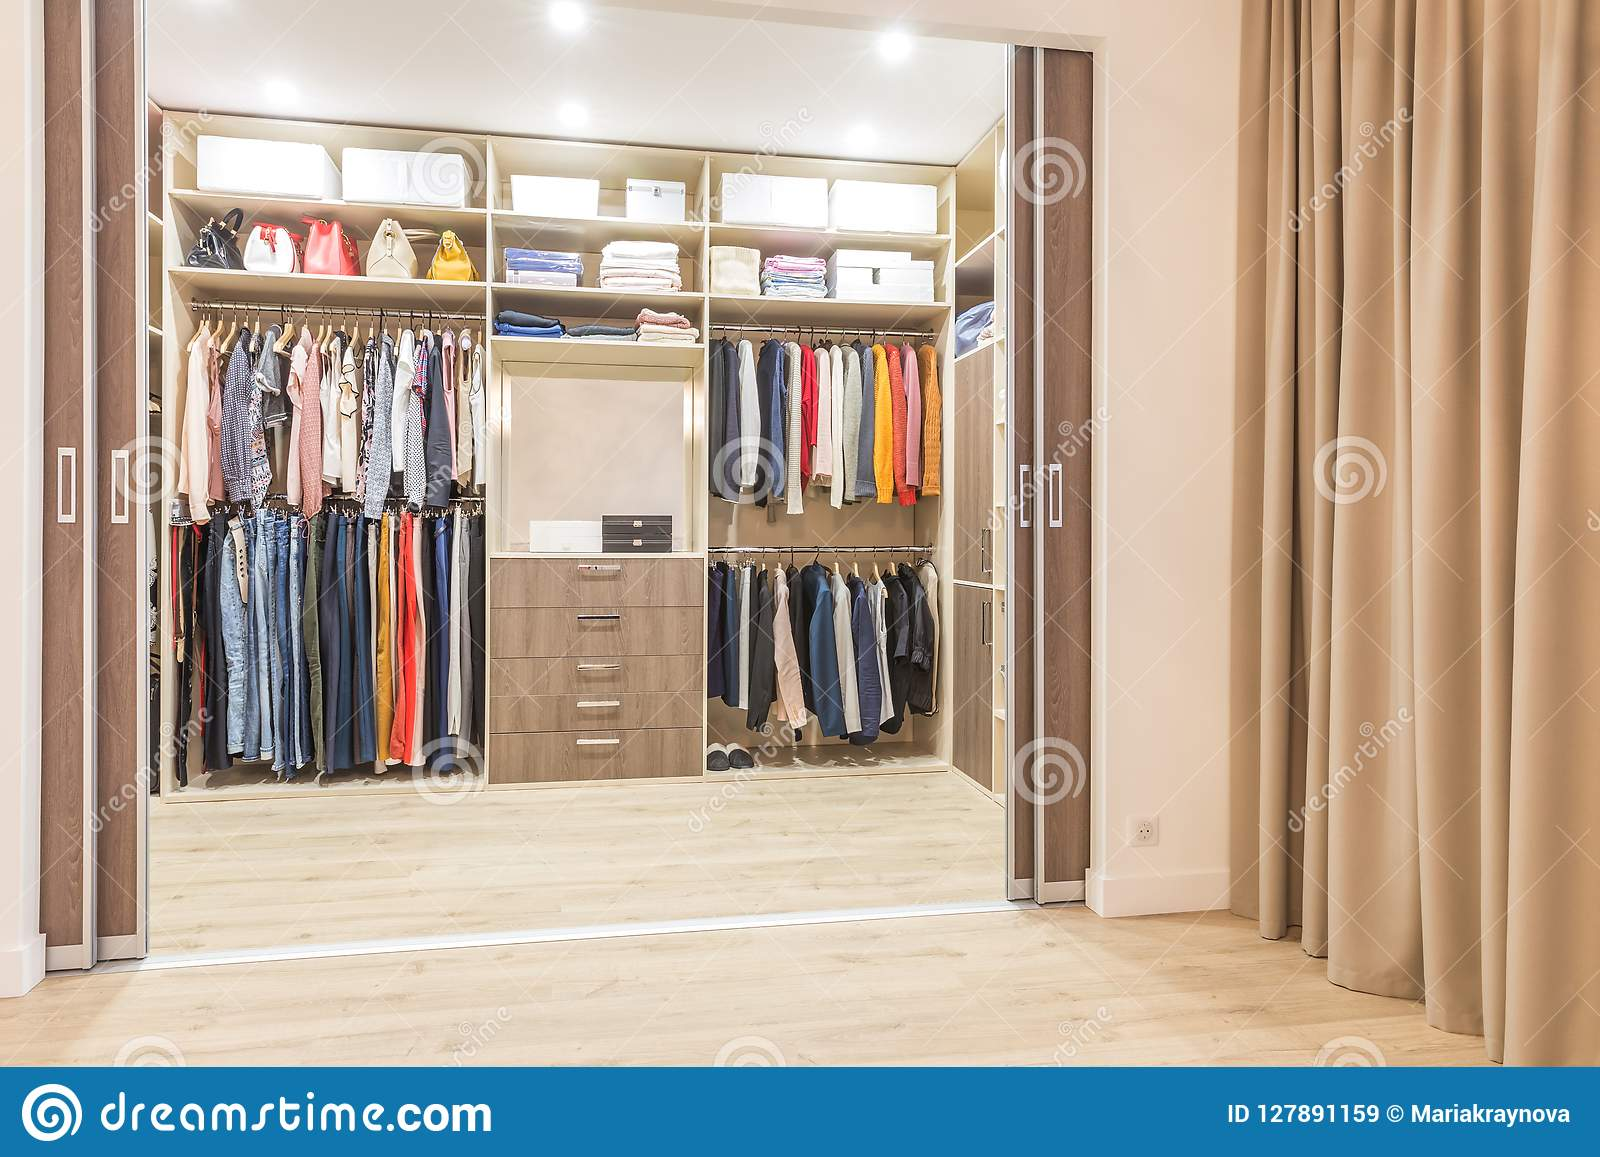 Modern Wooden Wardrobe With Clothes Hanging On Rail In Walk In Closet Stock Image Image Of Shelf Dress 127891159